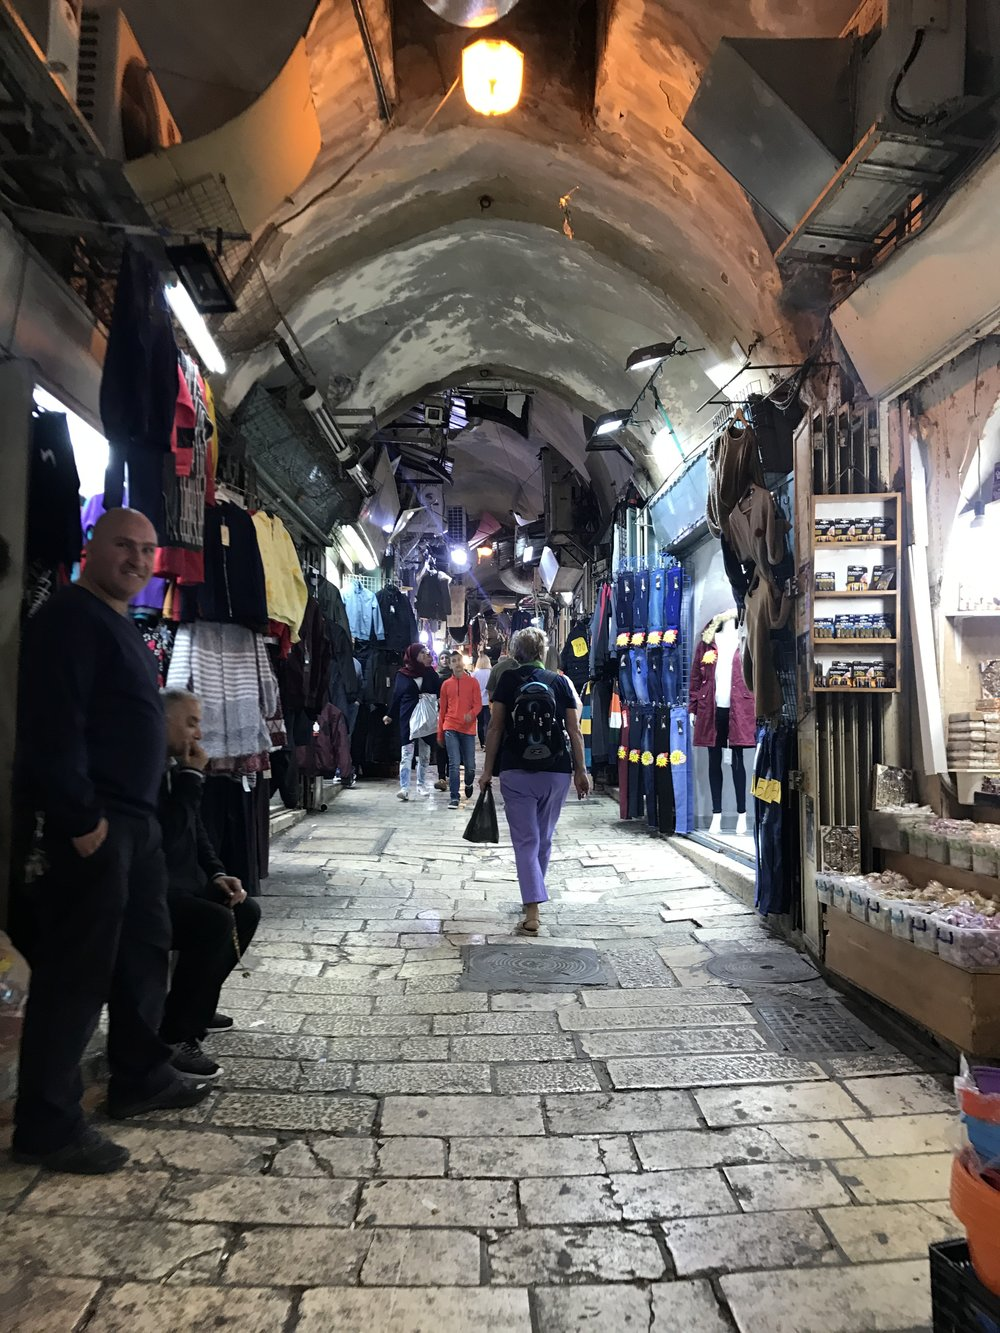 Market in the Christian Quarter of the Old City. Photo Credit: Samantha Manno, 2018.